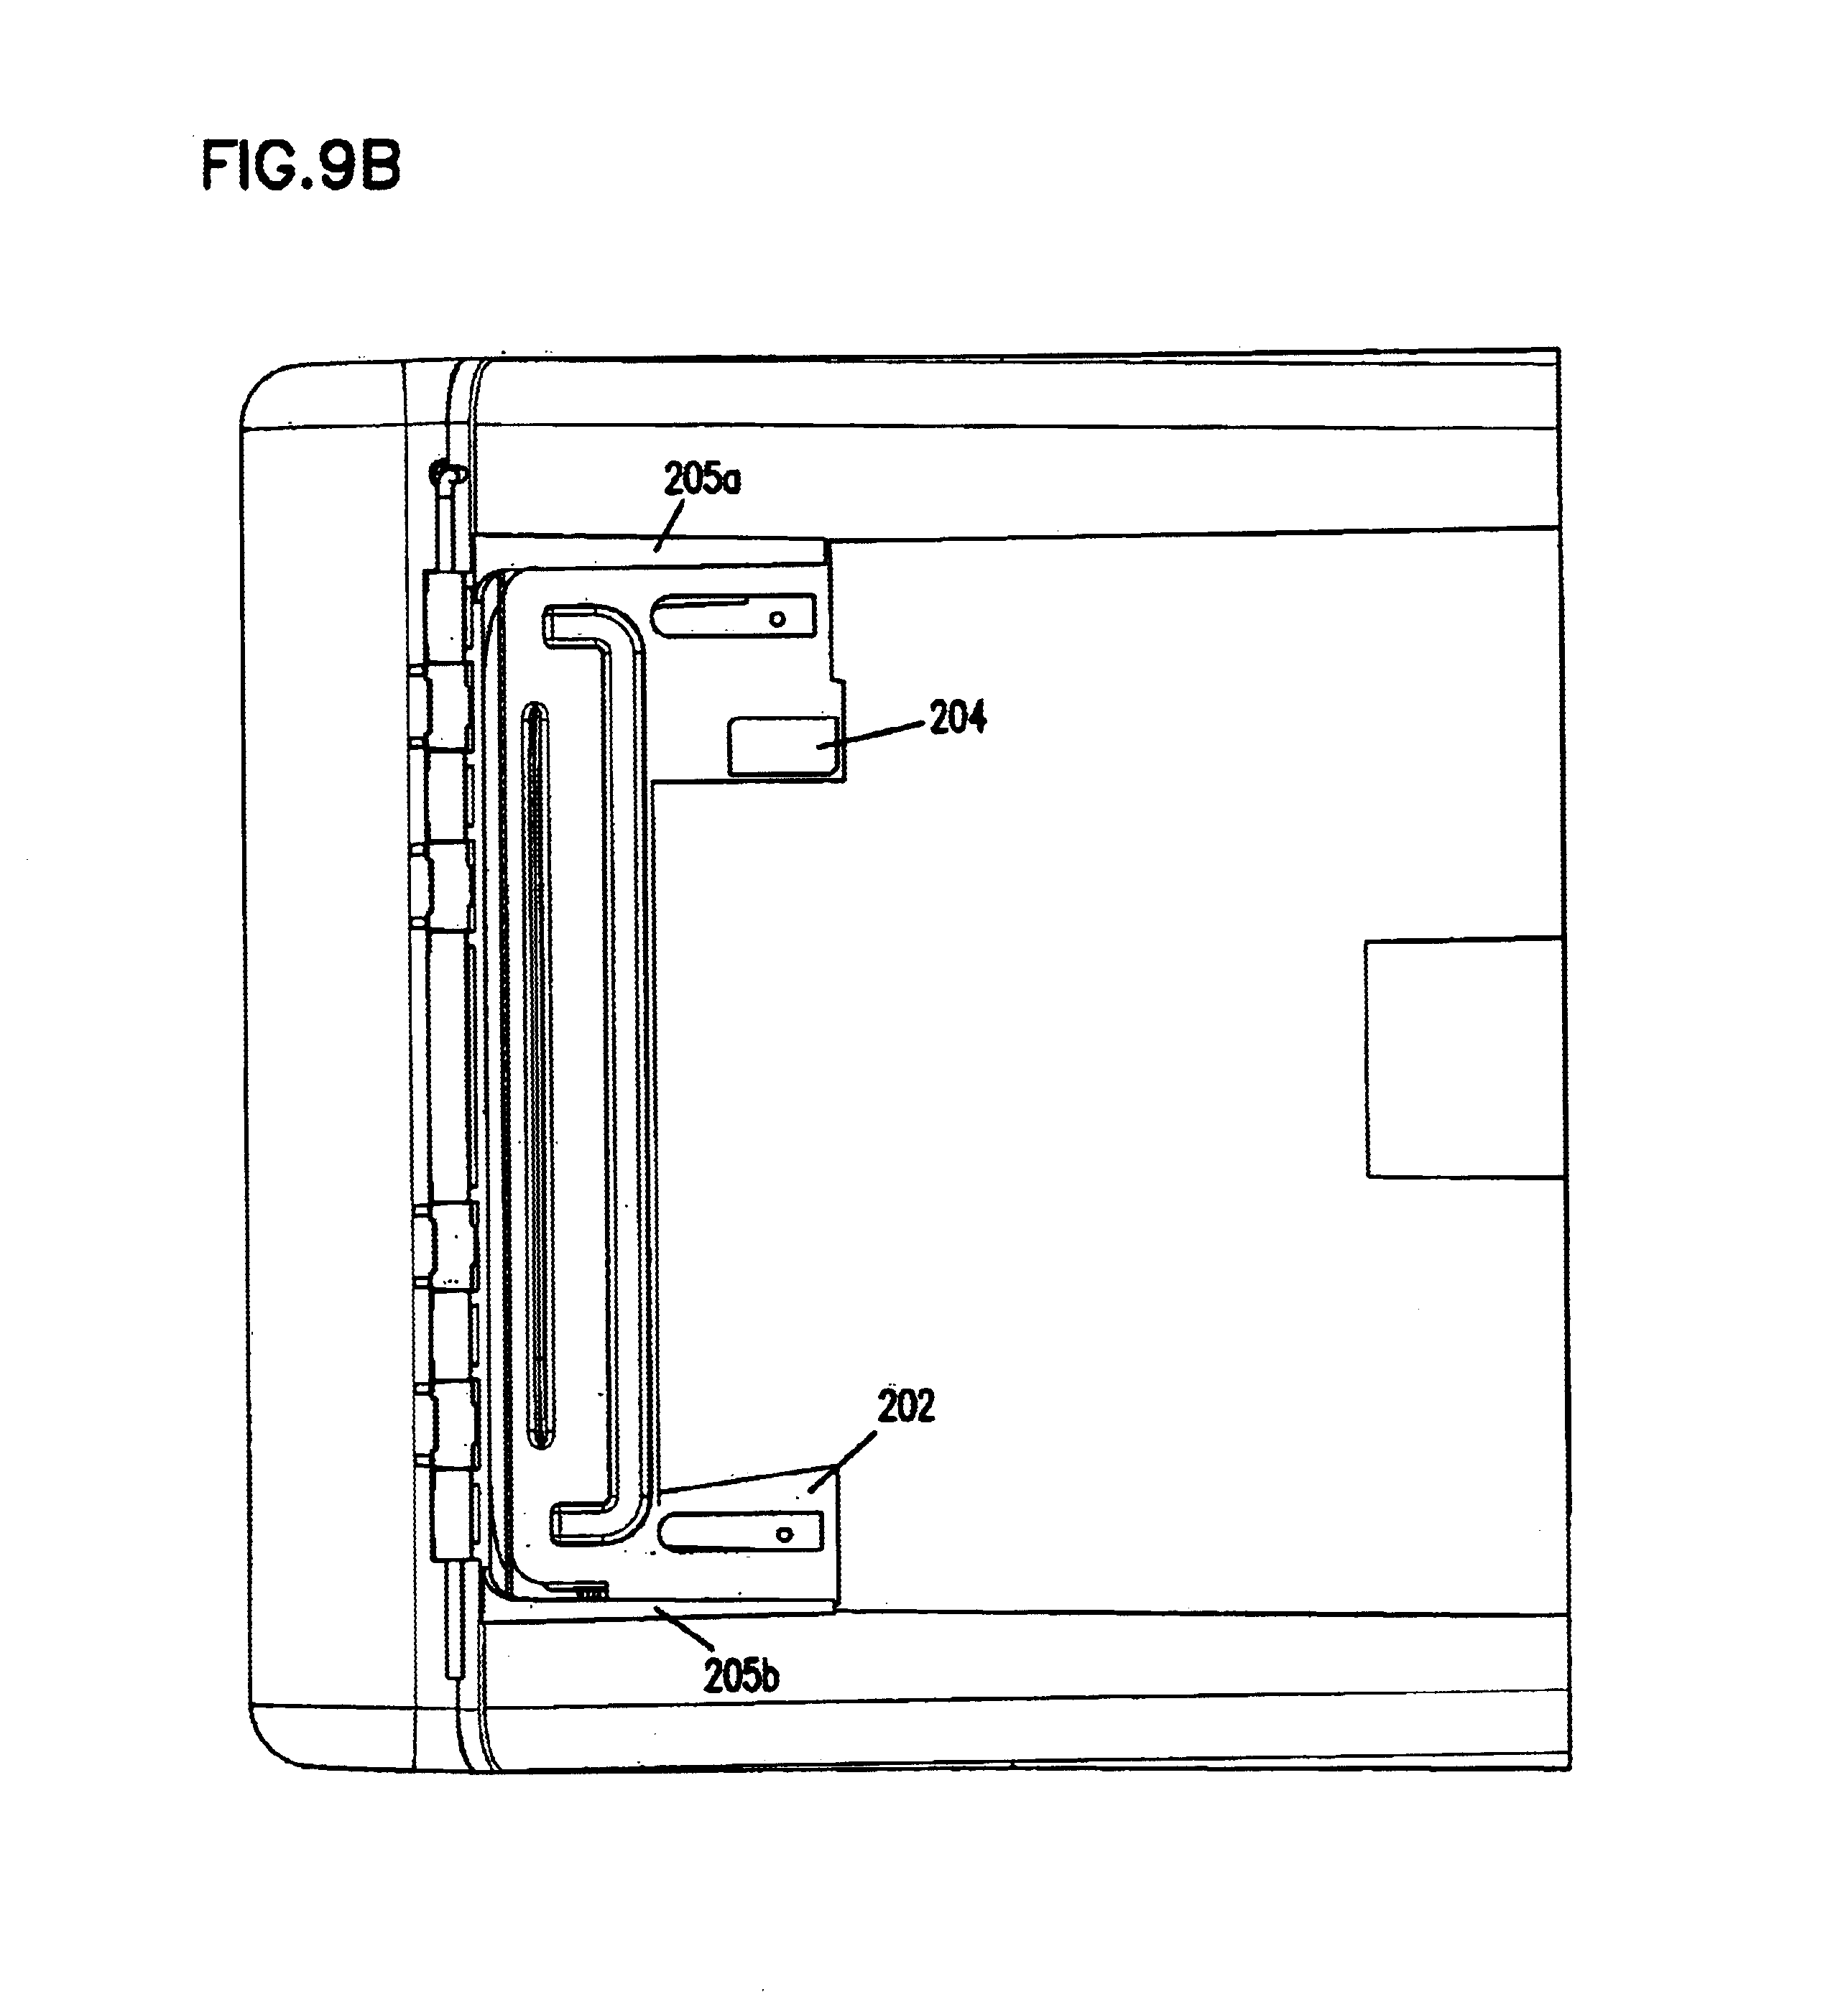 Bathroom Towel Dispenser Plans patent us6695246 - microprocessor controlled hands-free paper